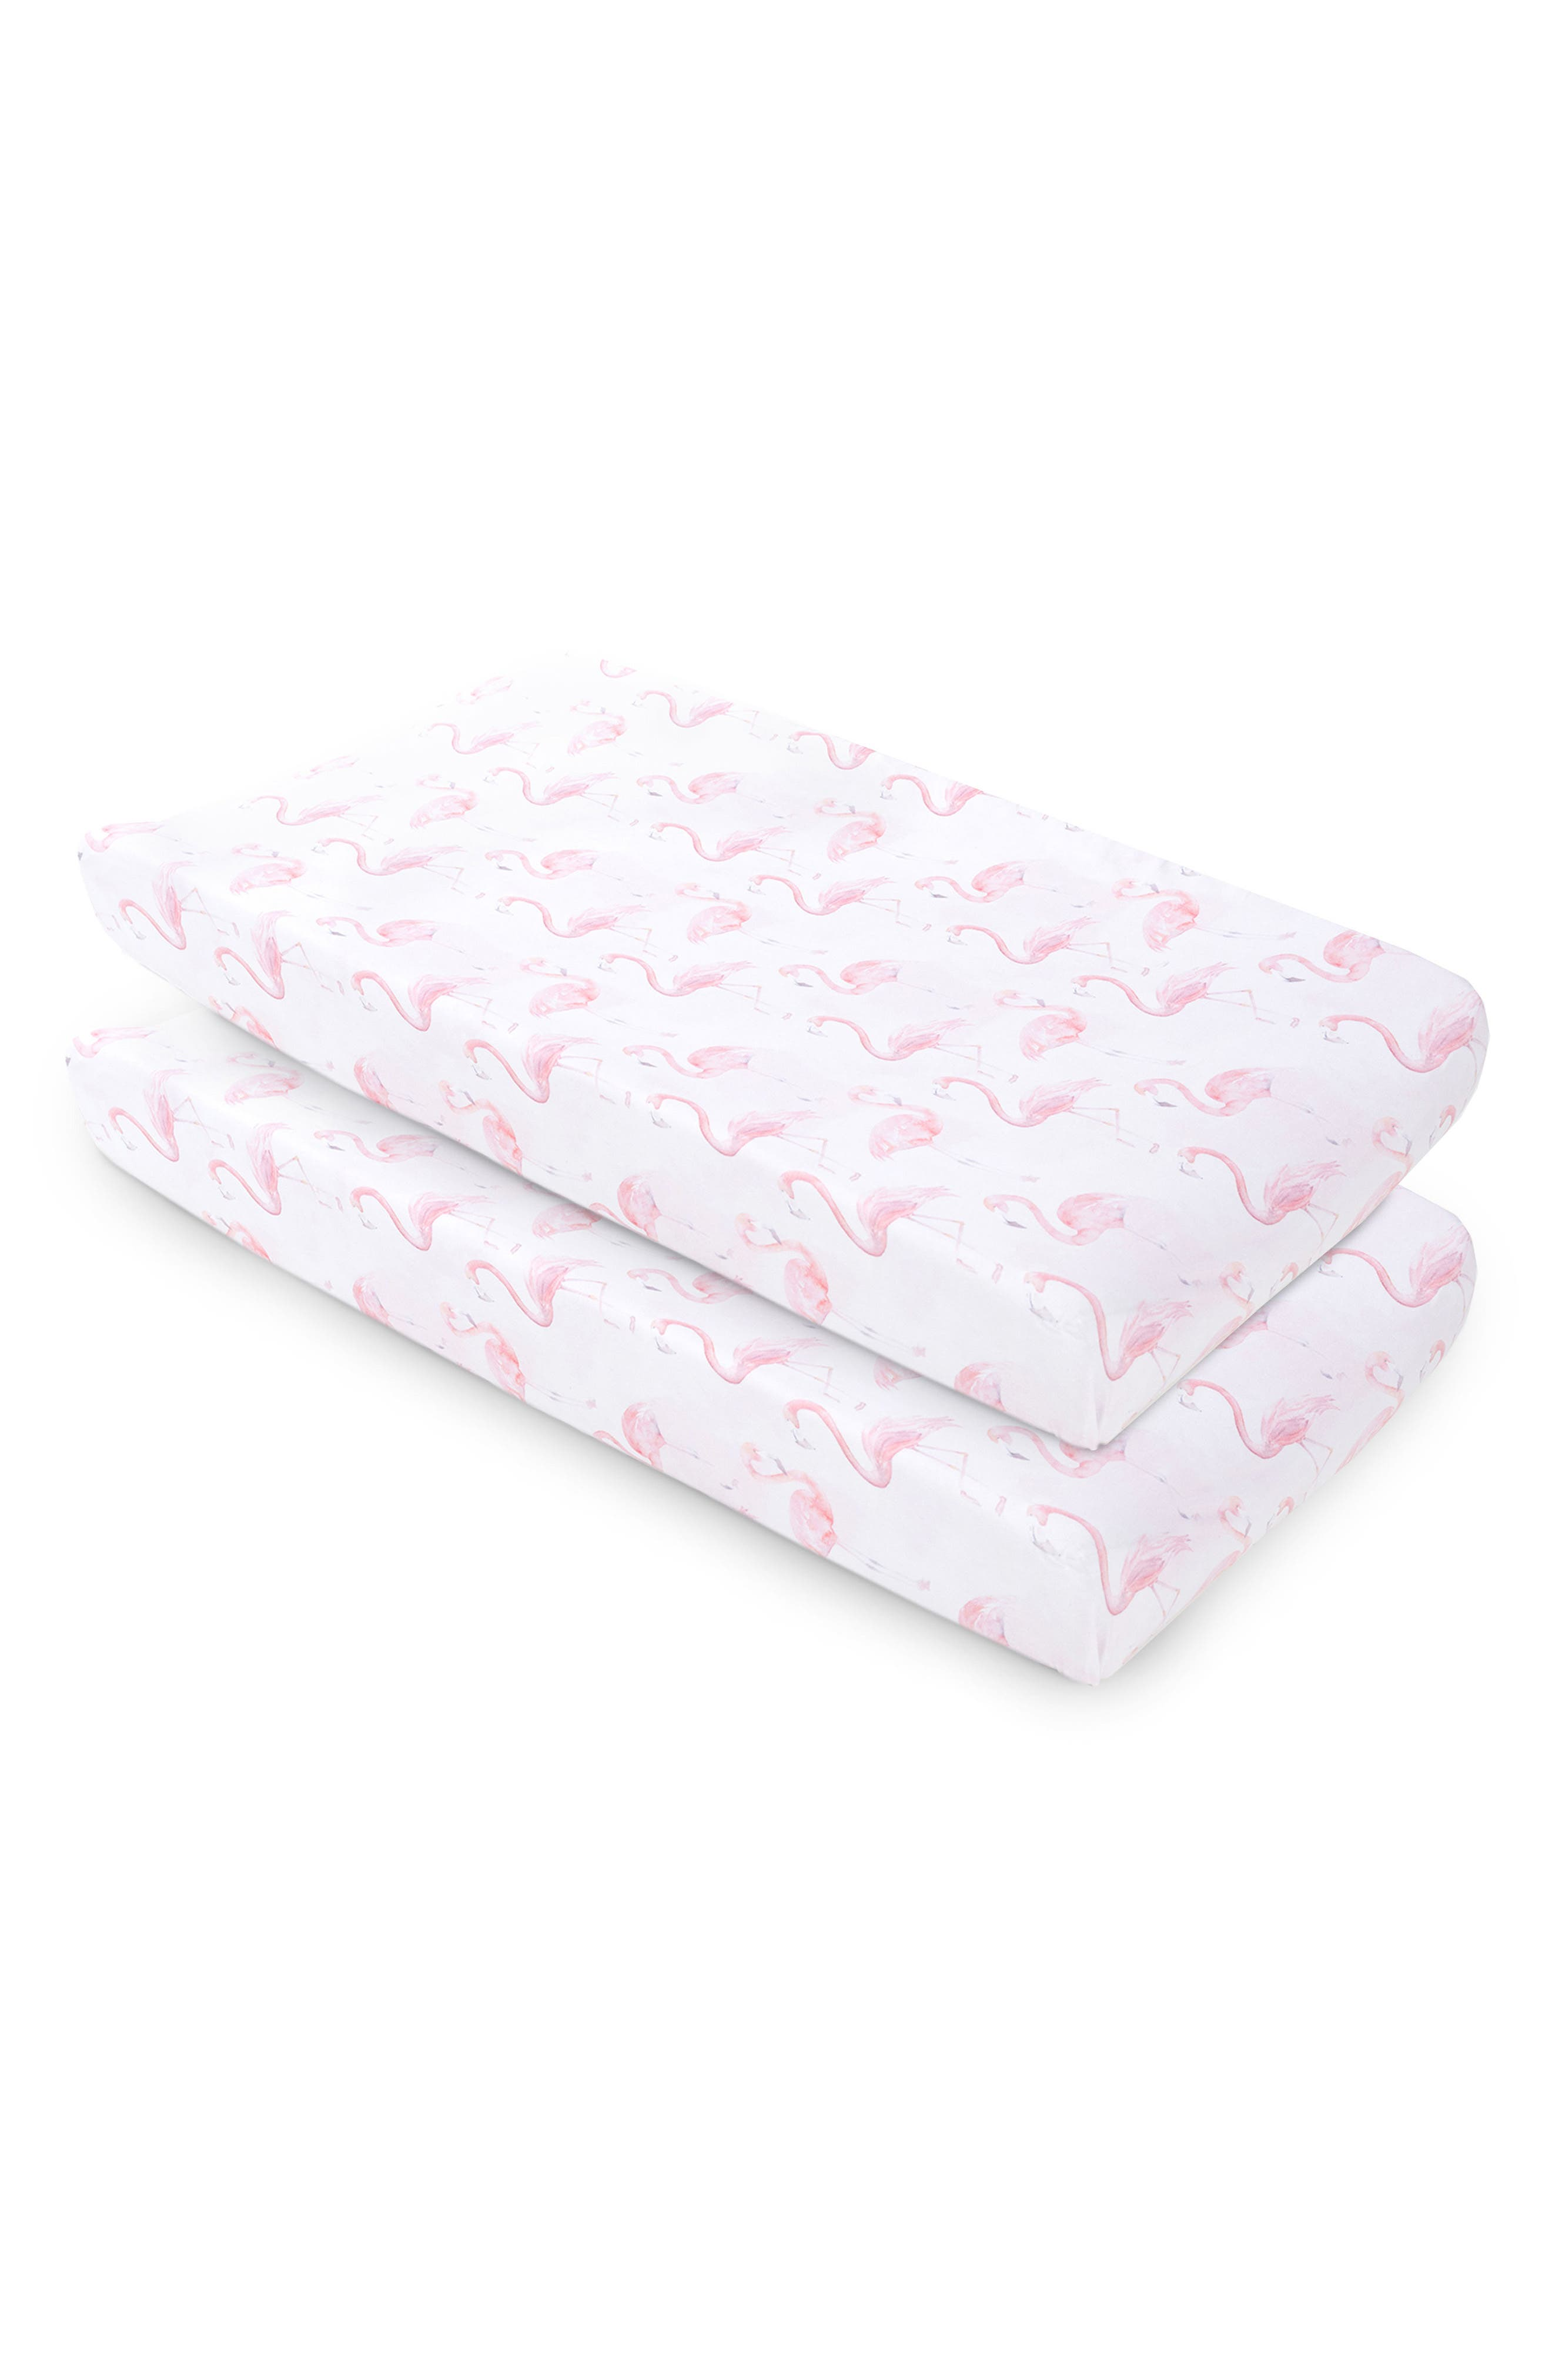 Flamingo Print 2-Pack Changing Pad Covers,                             Main thumbnail 1, color,                             BLUSH